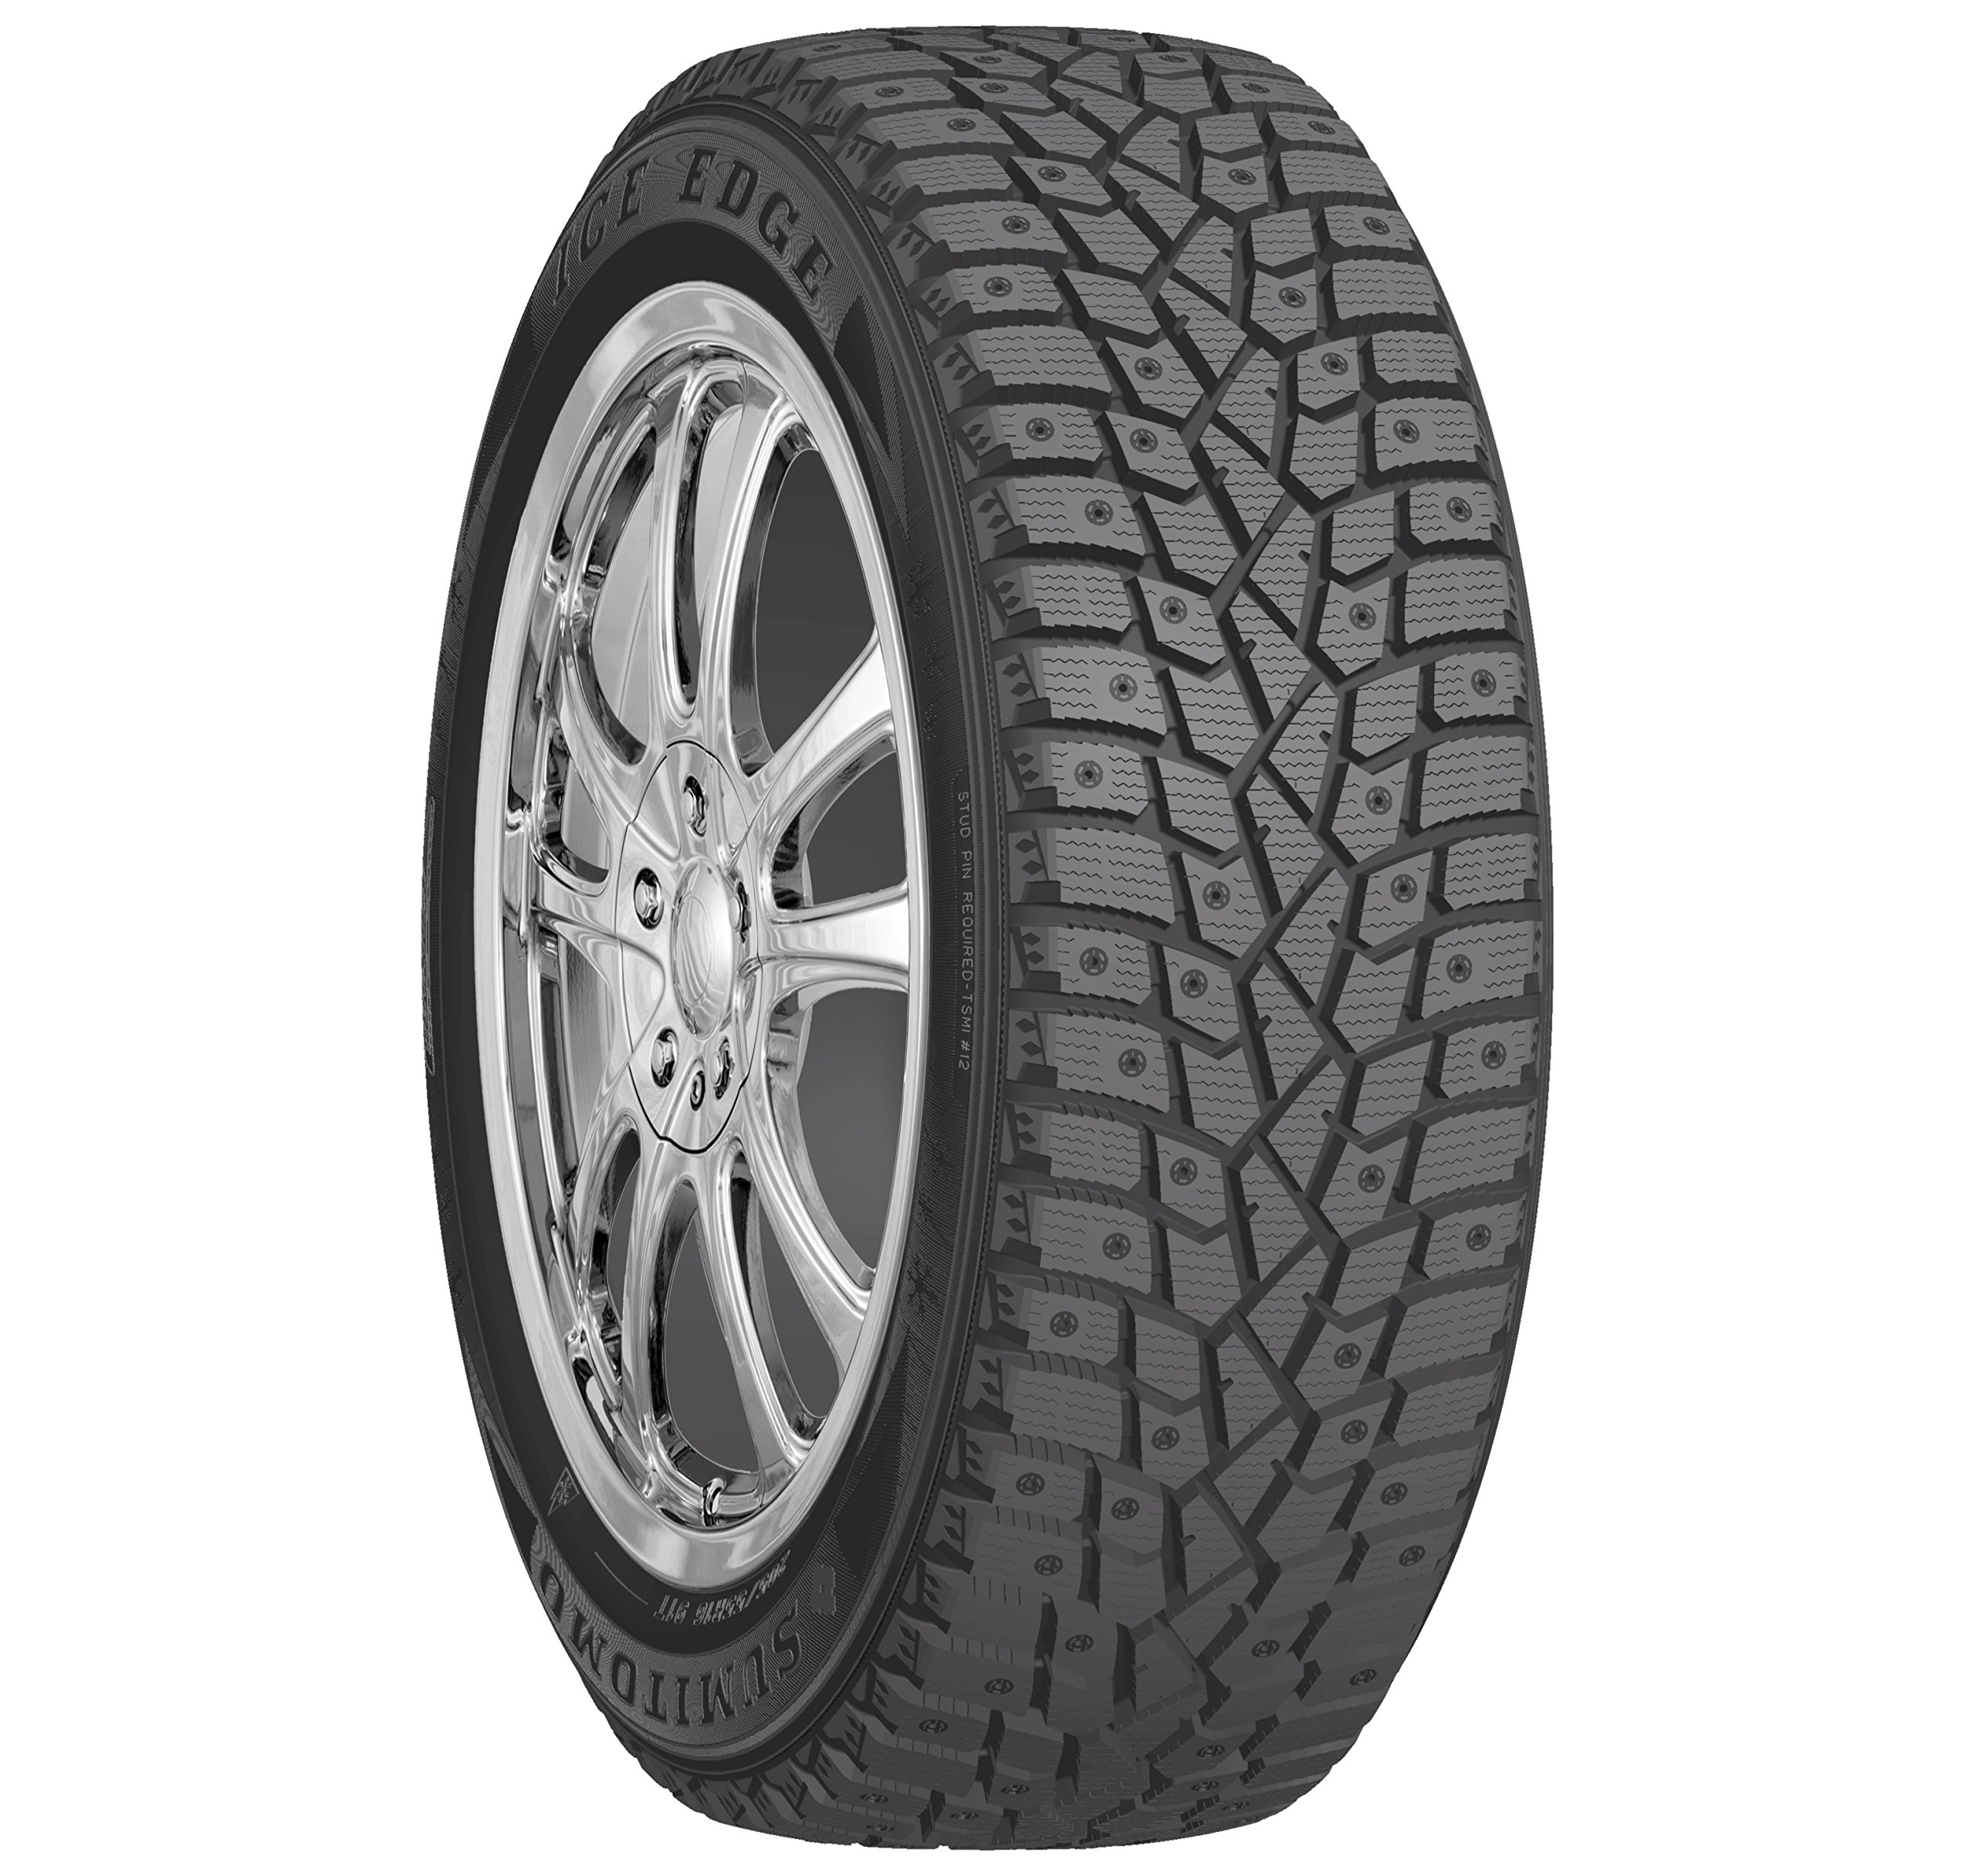 Sumitomo Ice Edge Studable-Winter Radial Tire - 215/65R16 98T